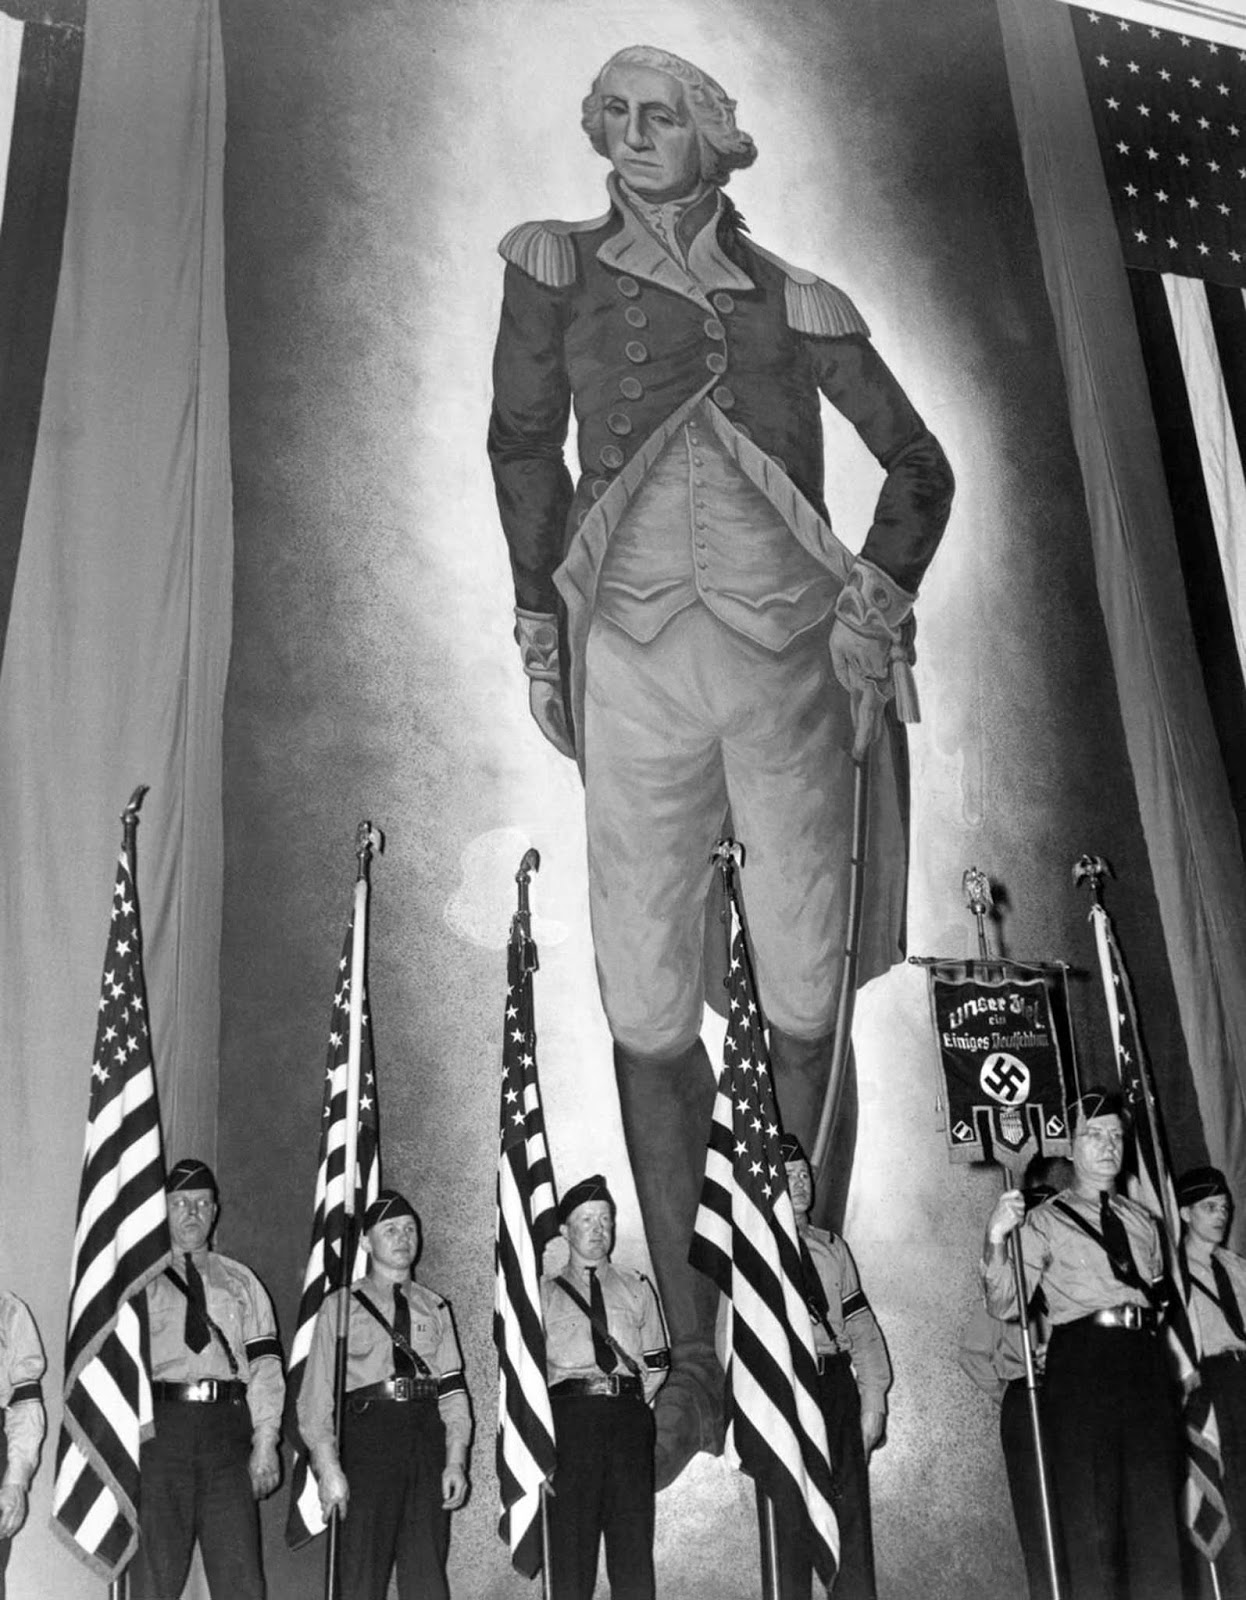 A Nazi guard stands before a massive portrait of George Washington.